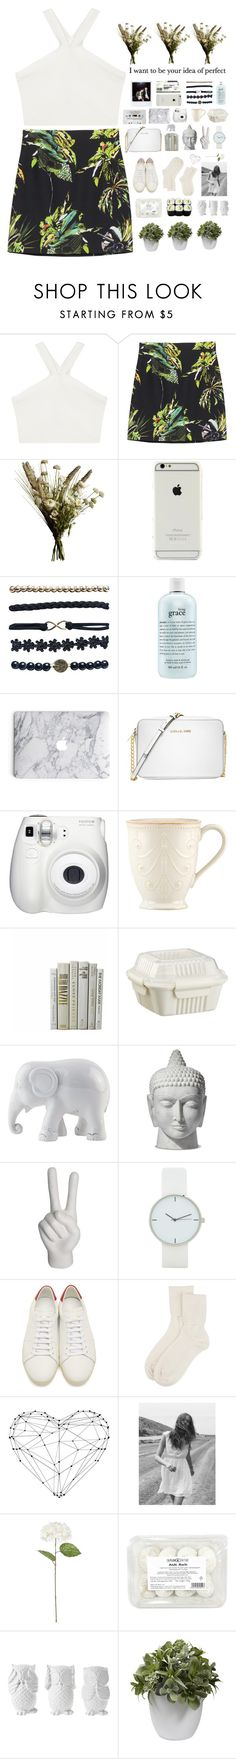 """""""im so into you i could barely breath"""" by robertcodyxx on Polyvore featuring BCBGMAXAZRIA, Proenza Schouler, Abigail Ahern, Wet Seal, philosophy, Michael Kors, Lenox, Crate and Barrel, The Elephant Family and Noir"""